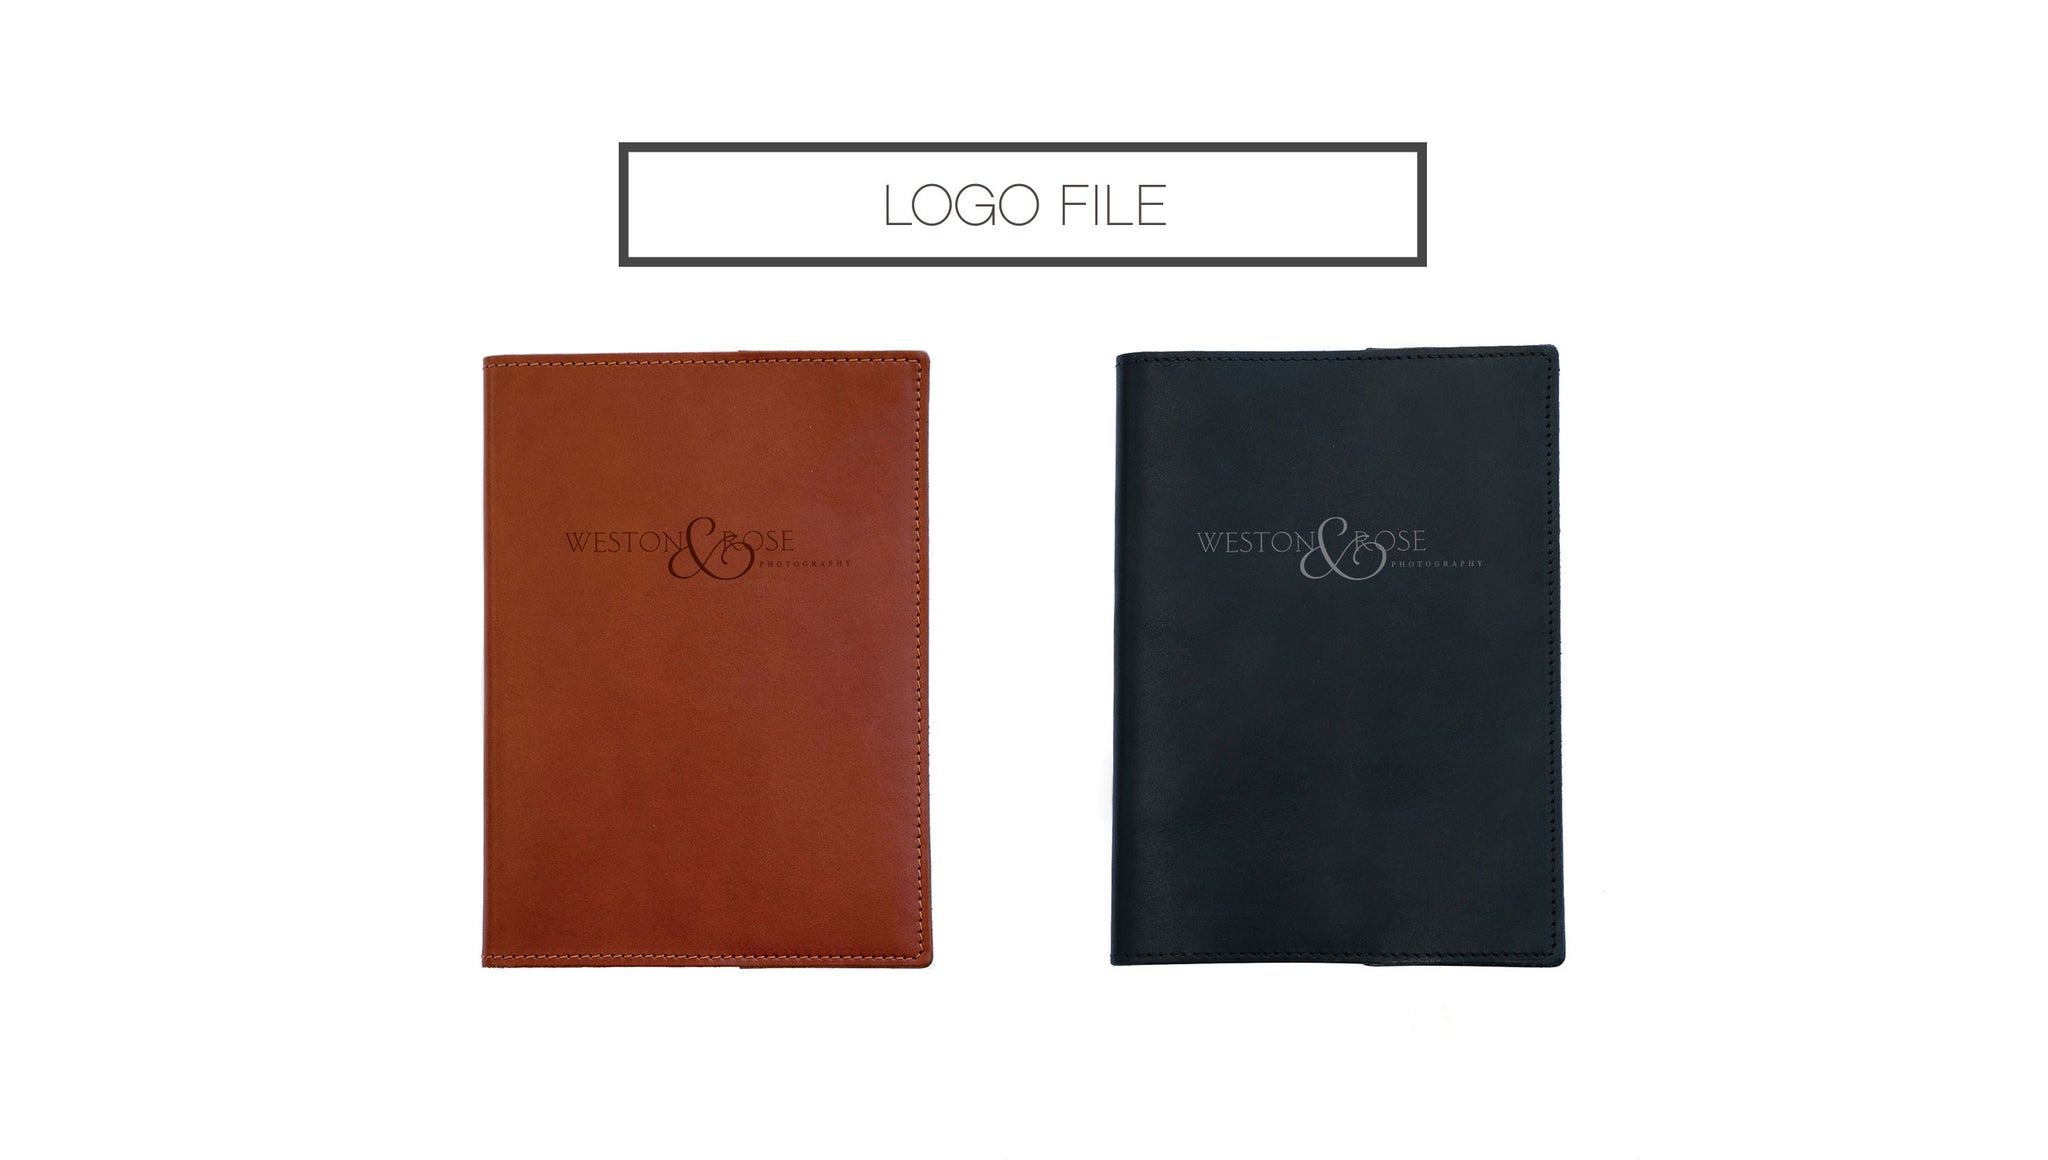 FOTO's genuine leather journal can be personalized with a custom design file or your business logo. Your JPG file must be completely black and white - no grayscale, color or photographs.